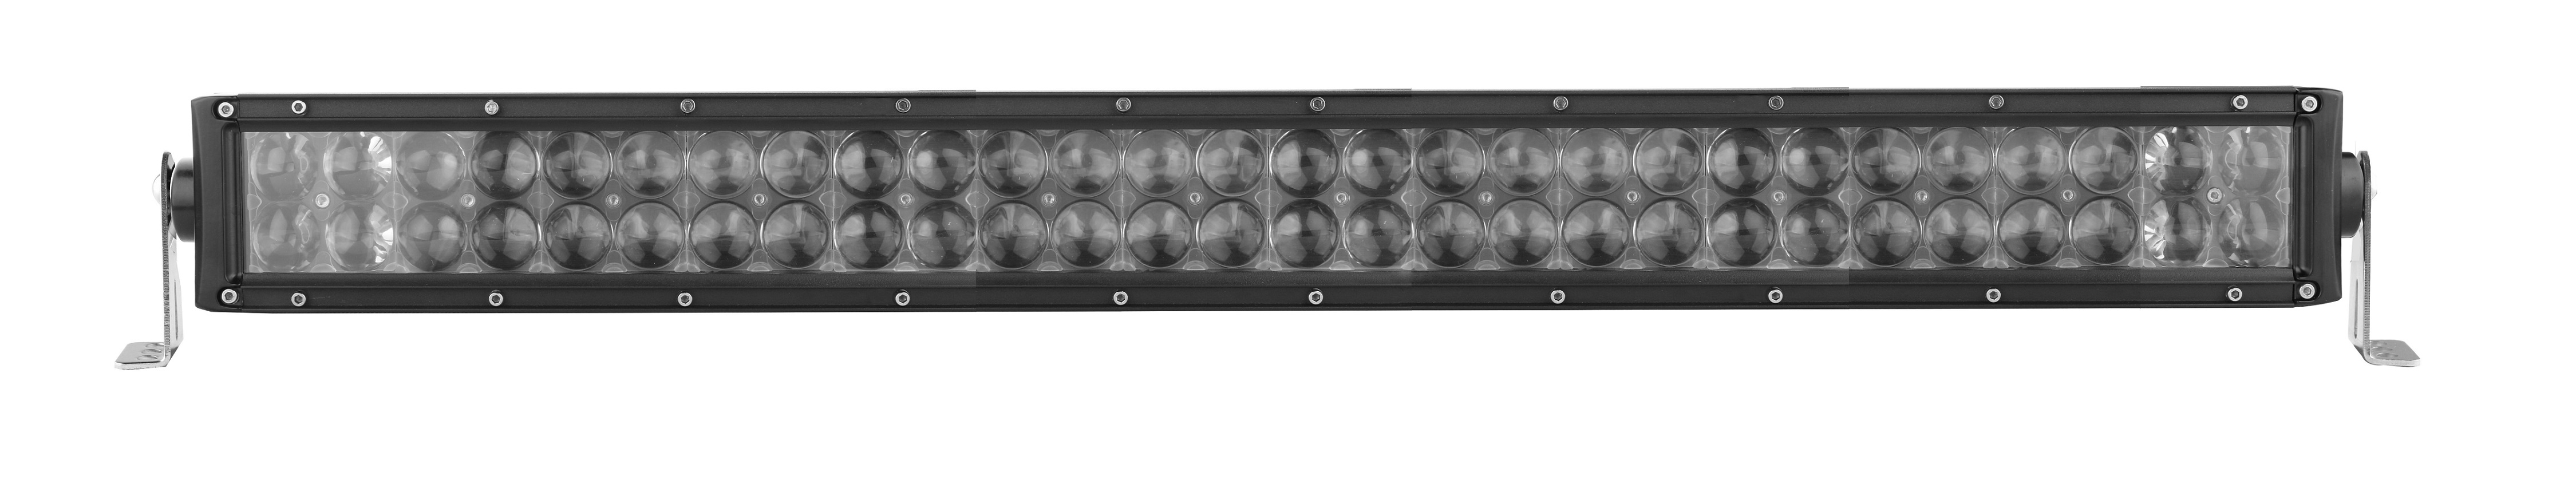 CREE LED Light Bar NSL-18060BC-4D-180W